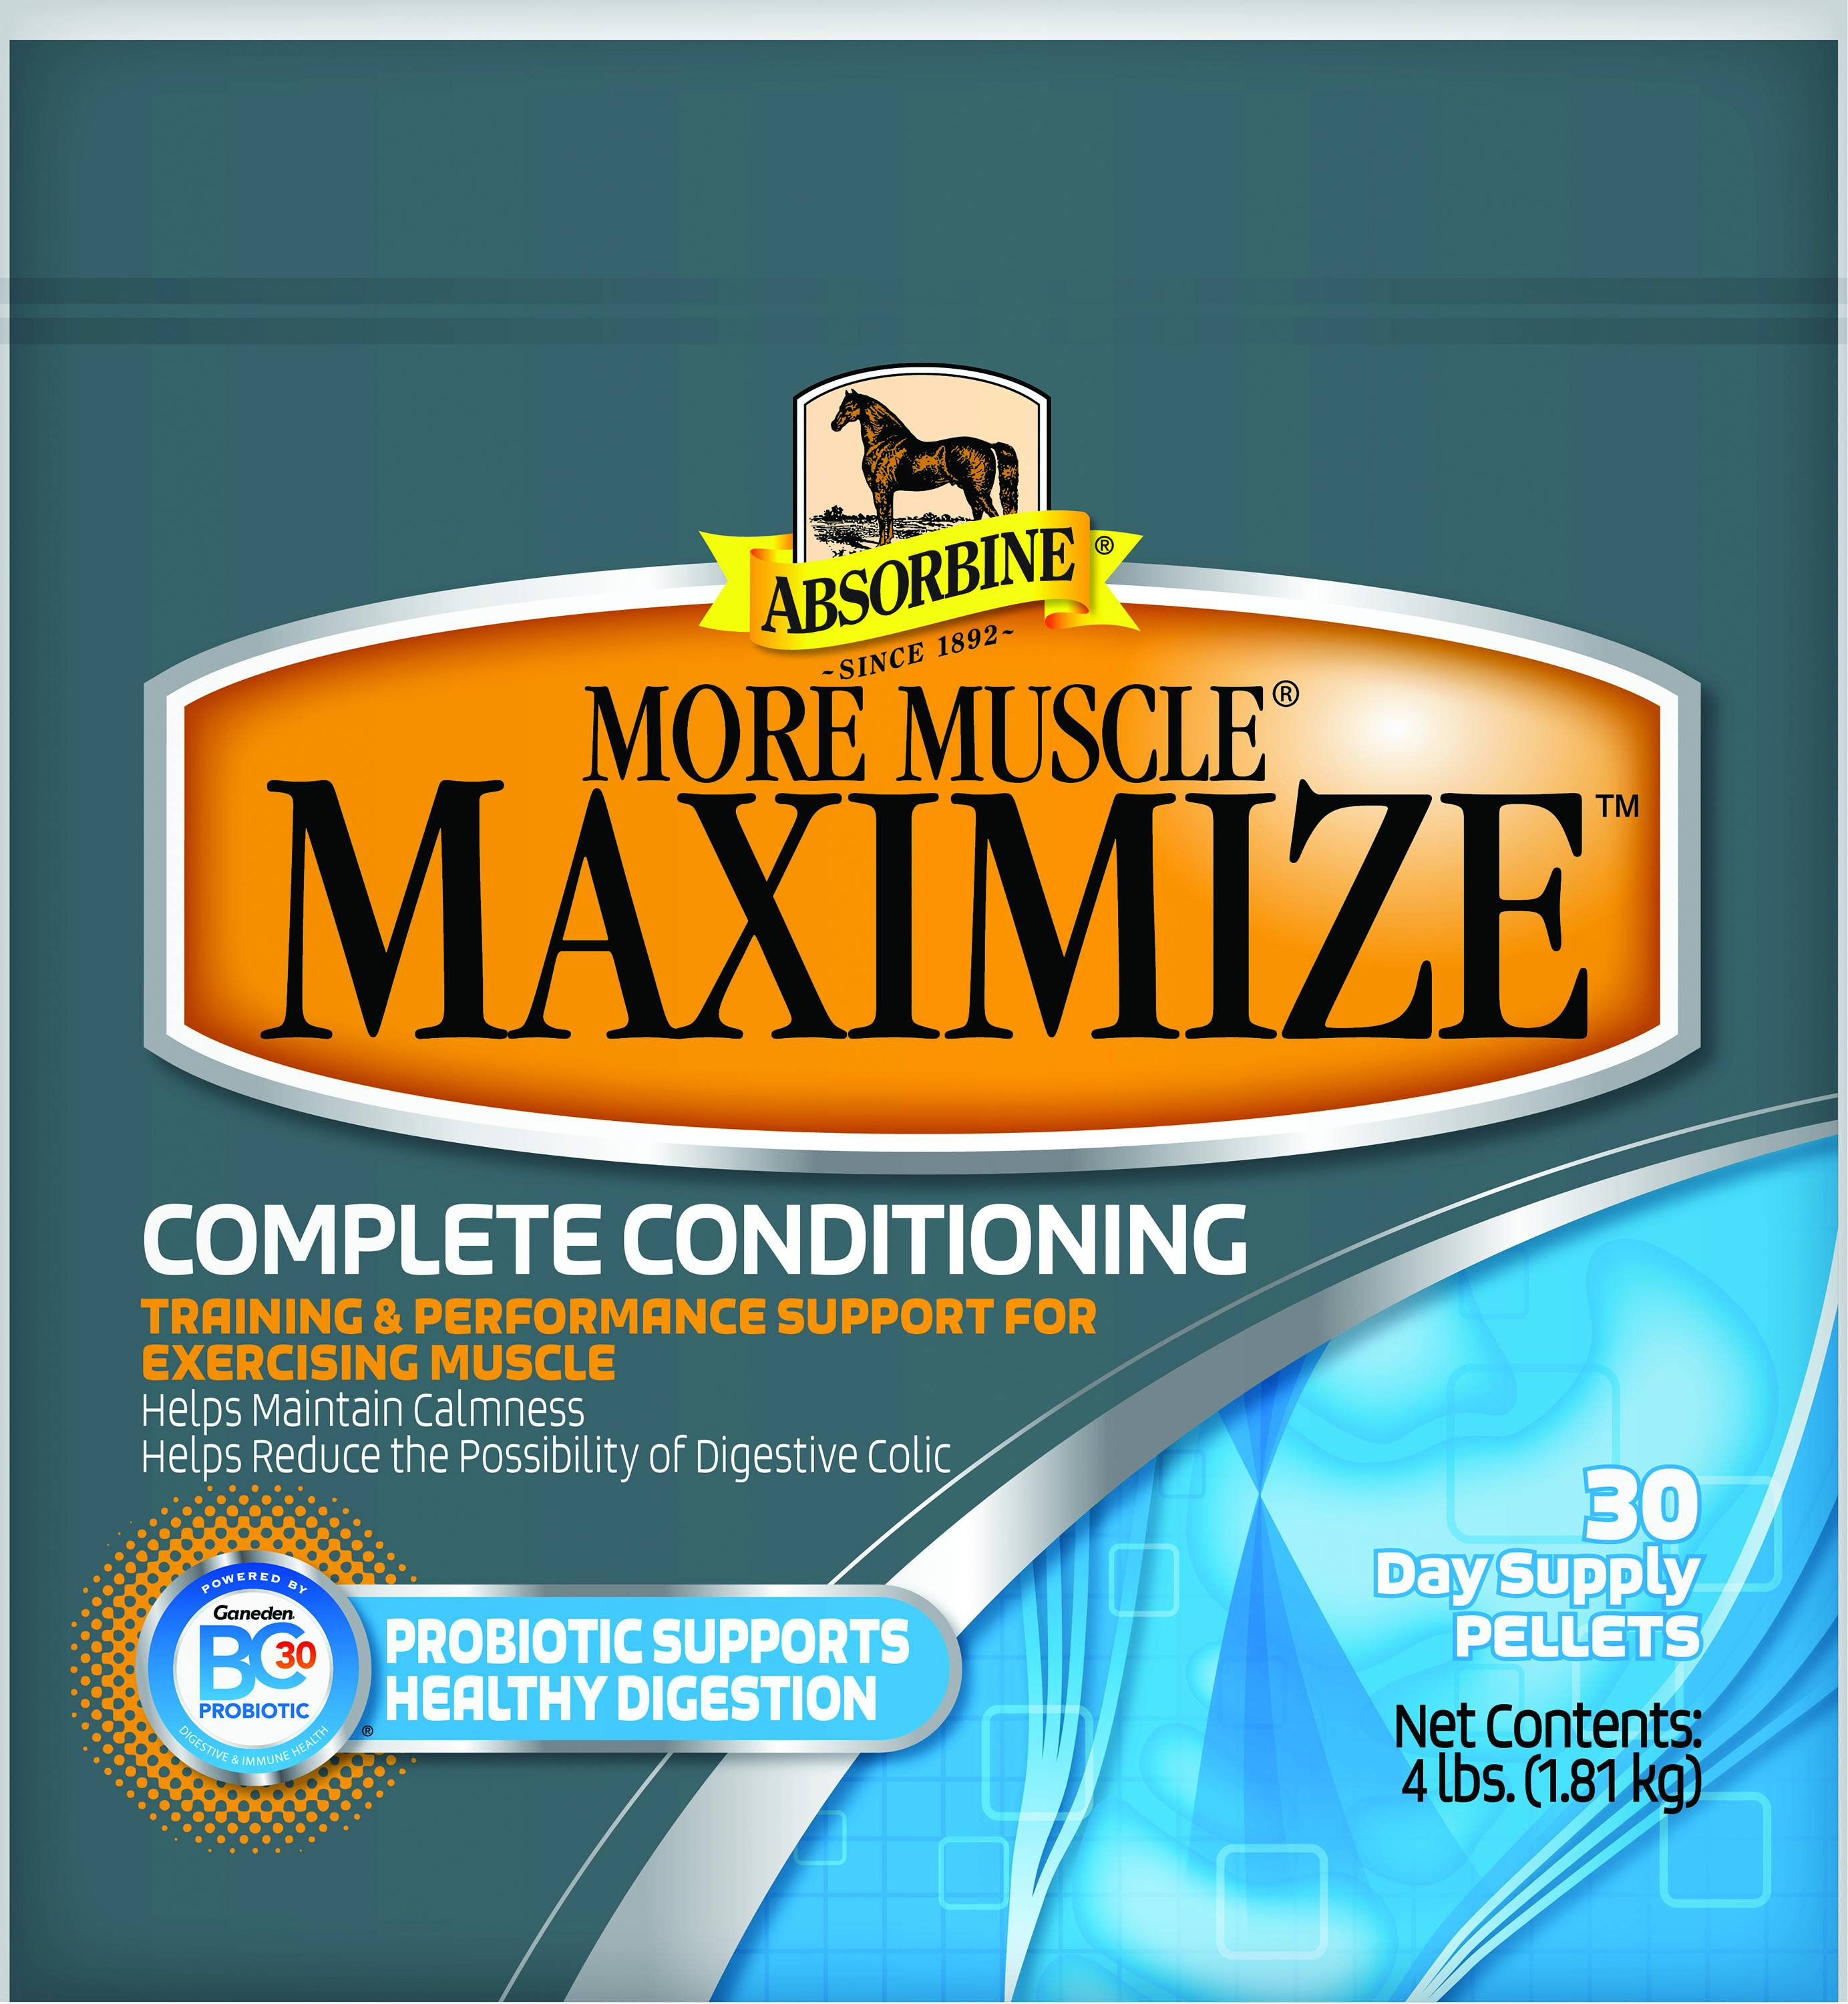 Absorbine More Muscle Maximize - 4 lb/30 Day